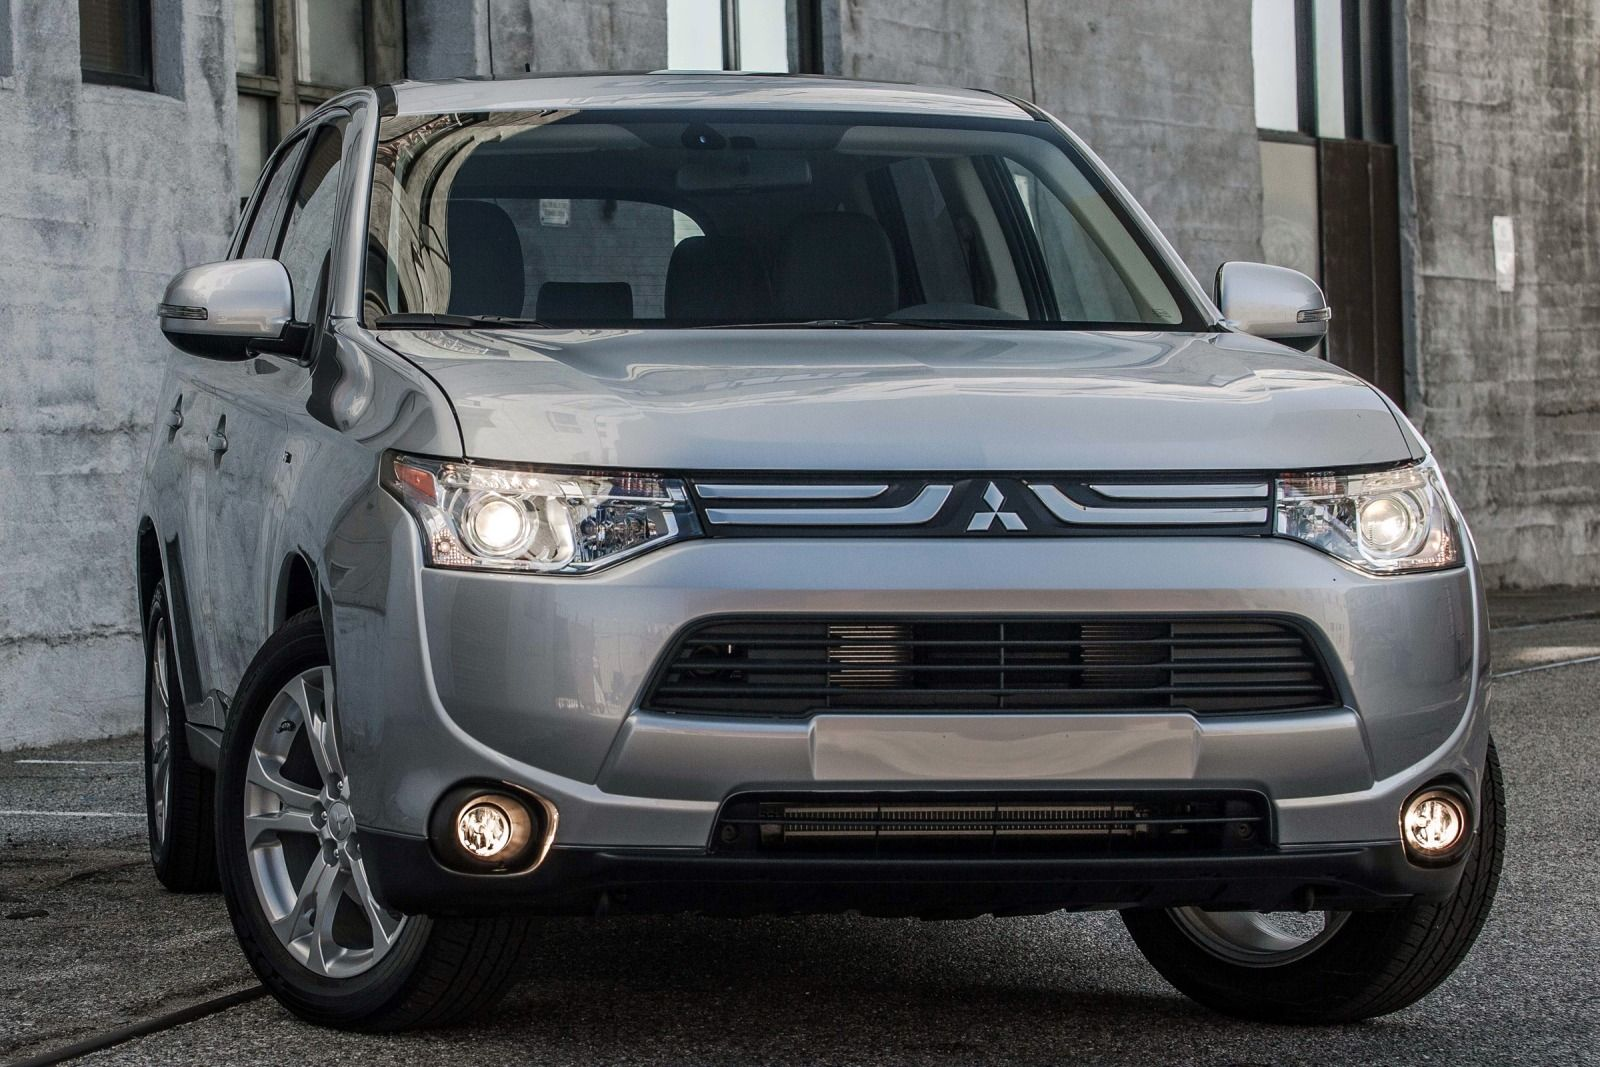 2015 Mitsubishi Outlander - Budget Friendly